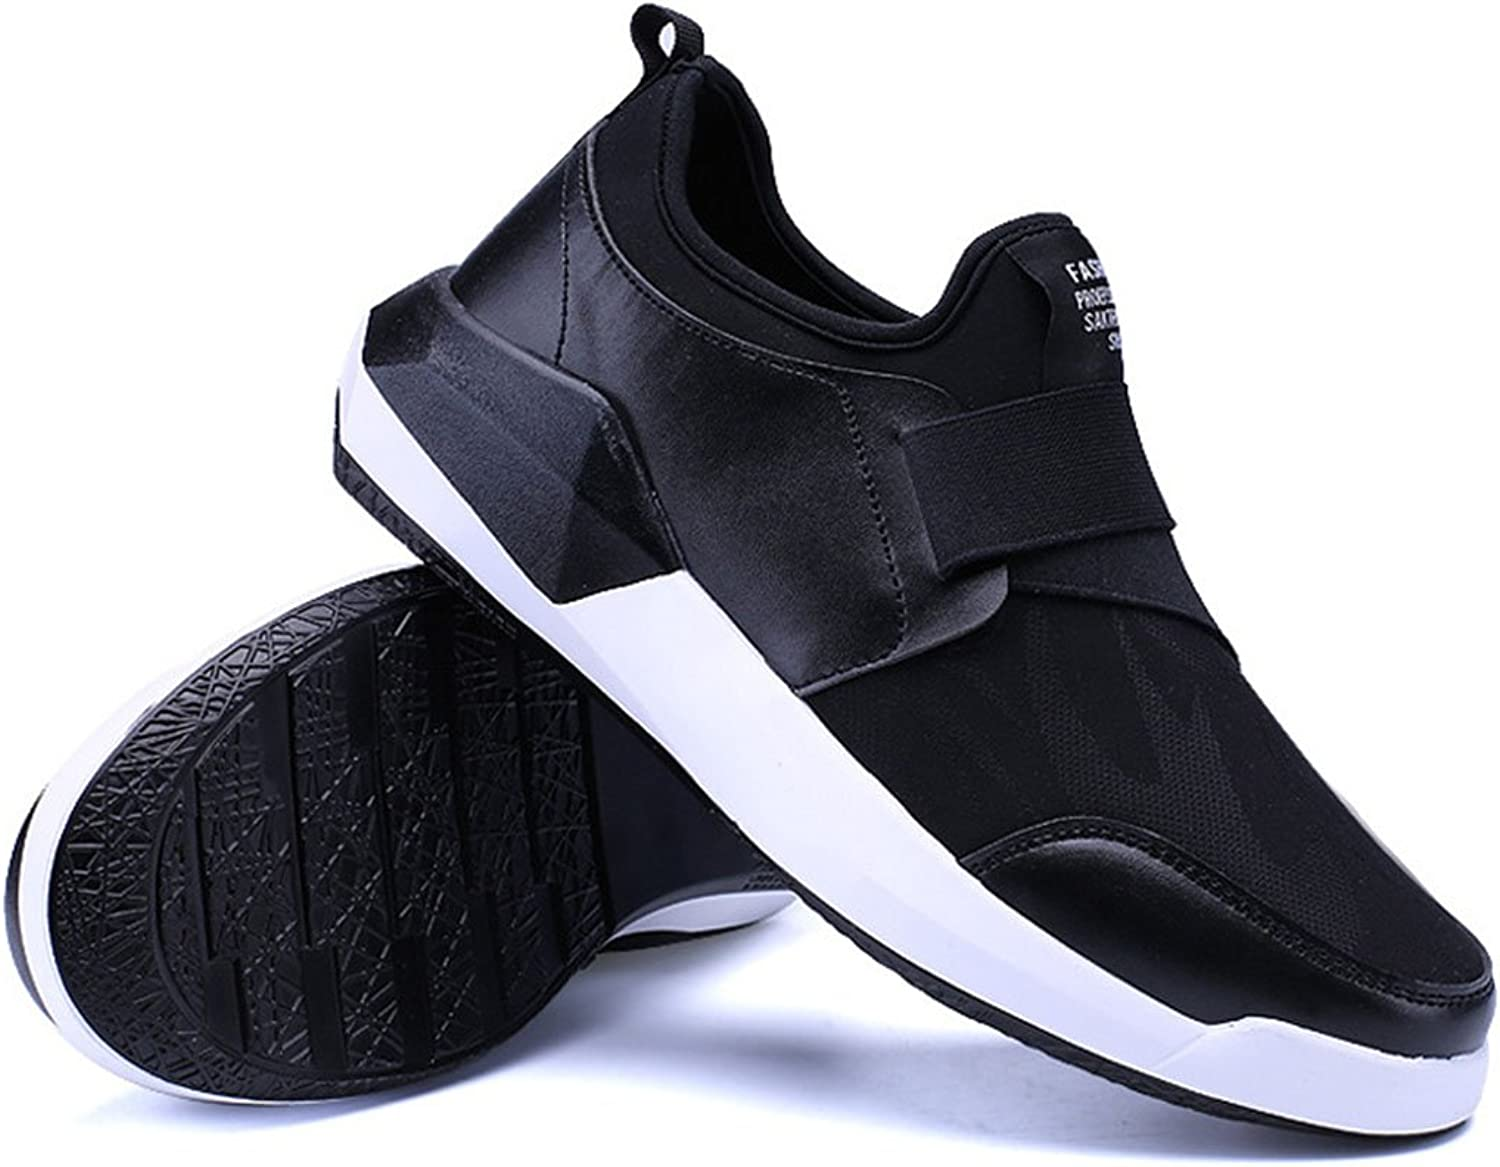 GAOLIXIA Men's Mesh Breathable Athletics shoes Spring Summer Lightweight Fashion Sports Casual shoes Running Trainers Athletic Walking Gym shoes